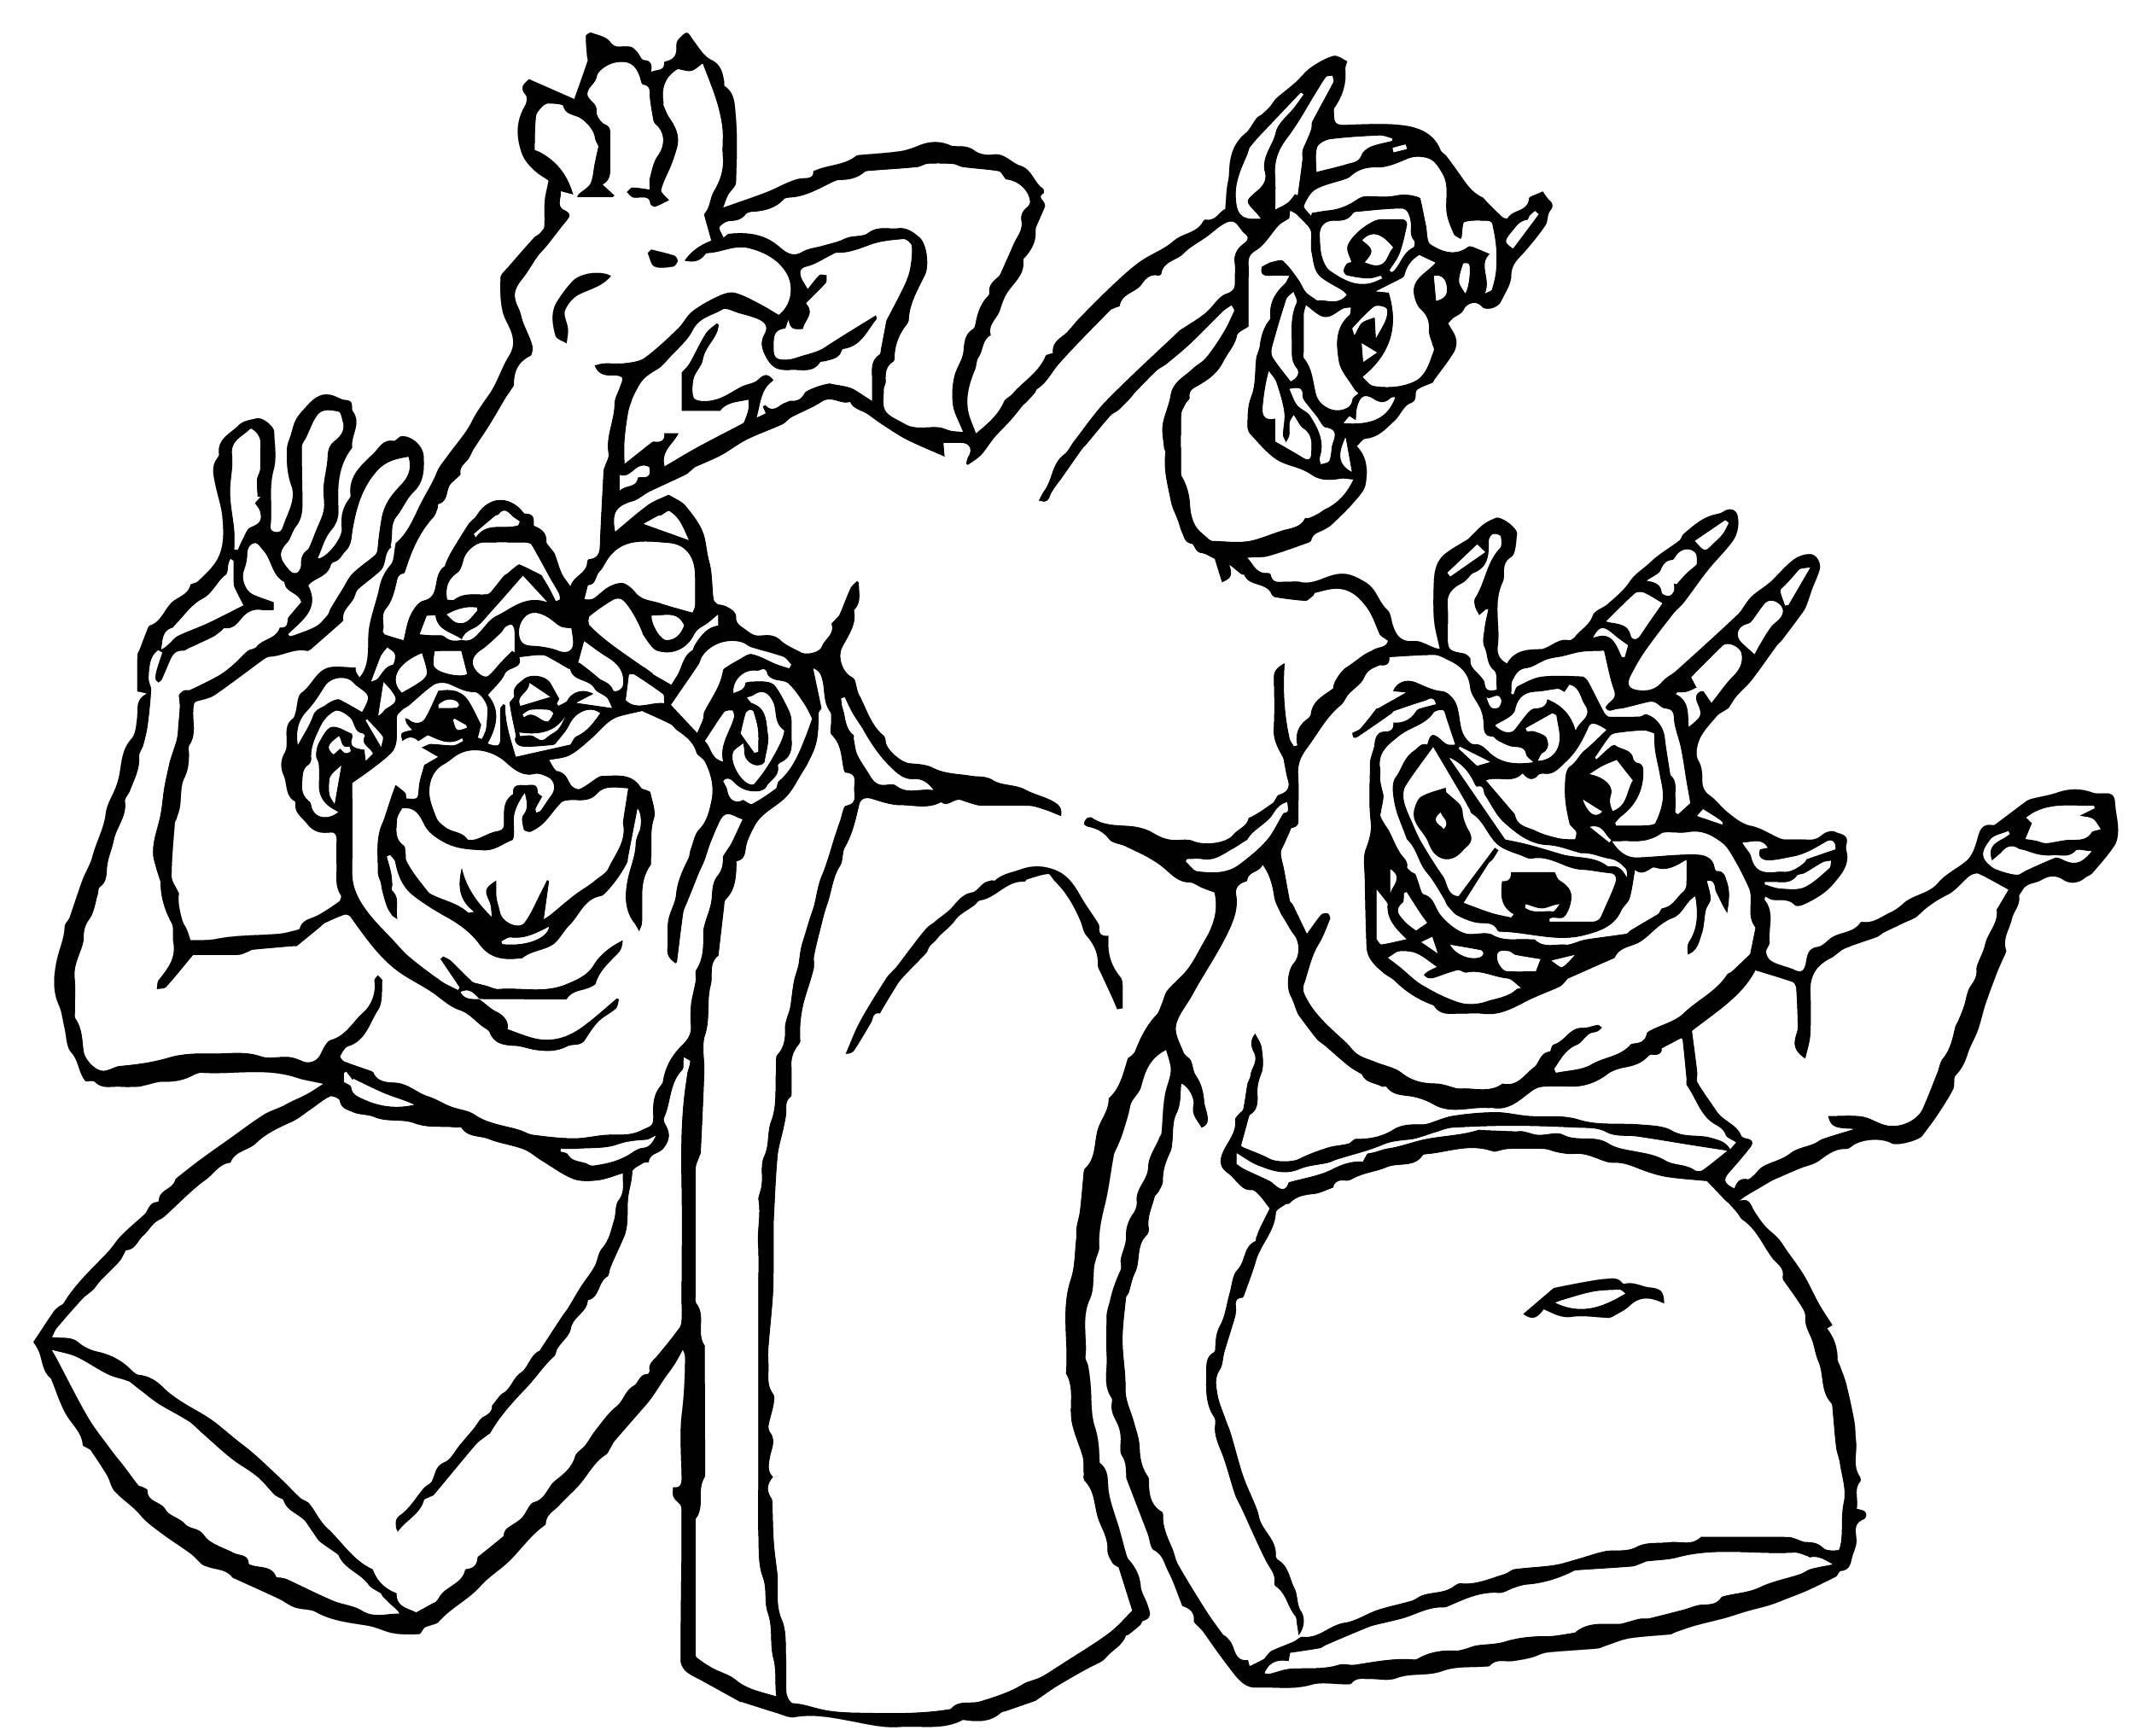 The Hunchback Of Notre Dame Mira20 Coloring Page